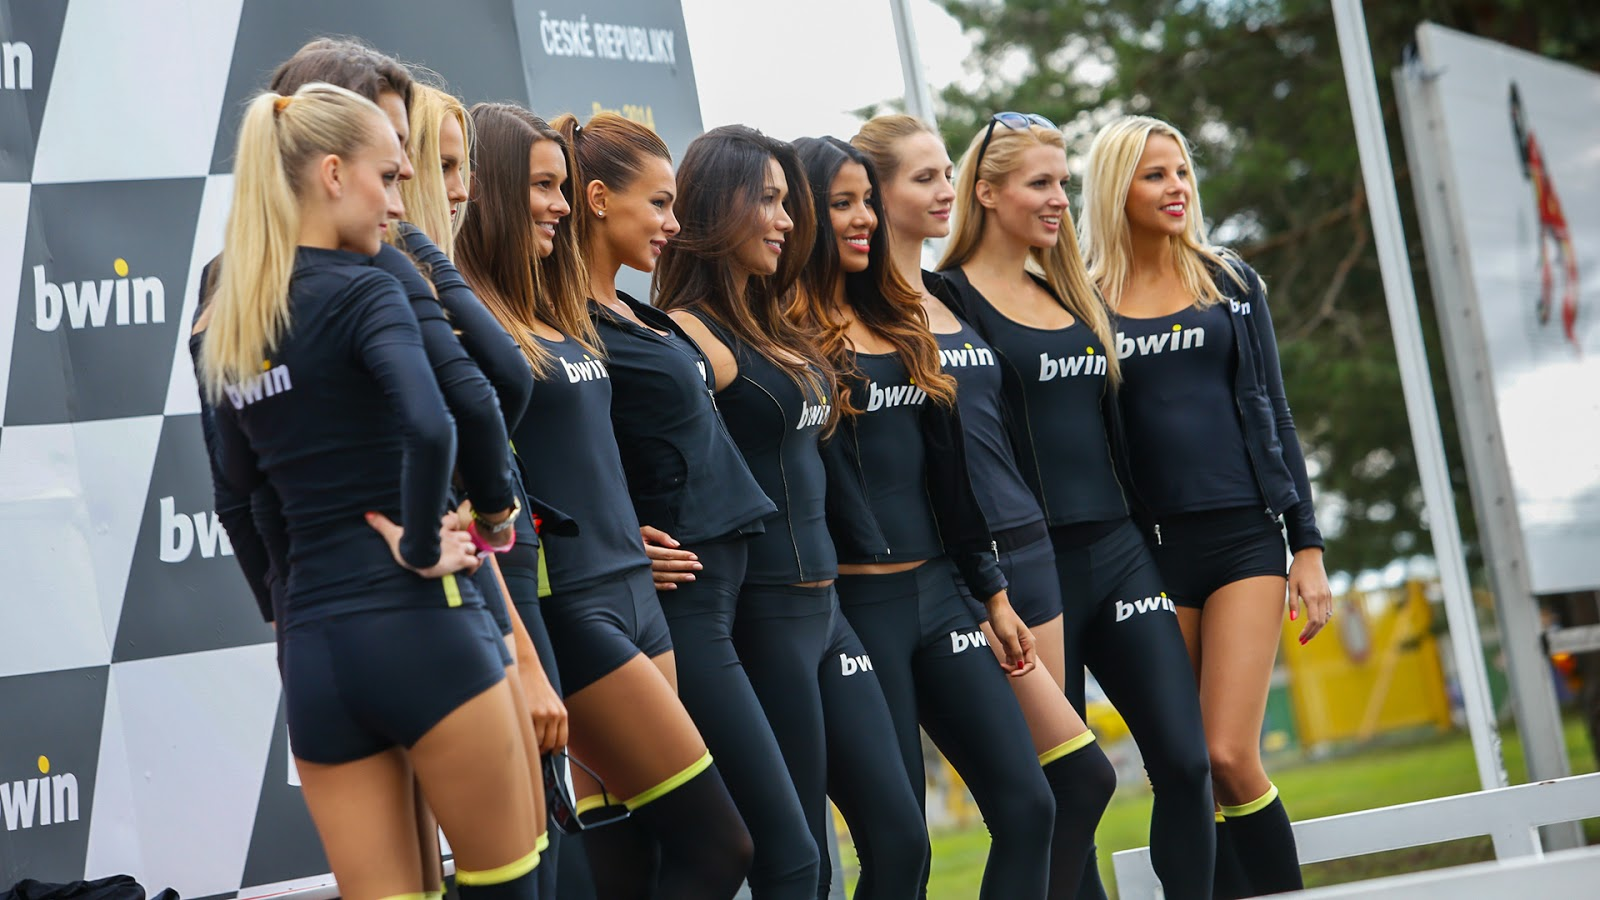 grid girls hd wallpapers - photo #4